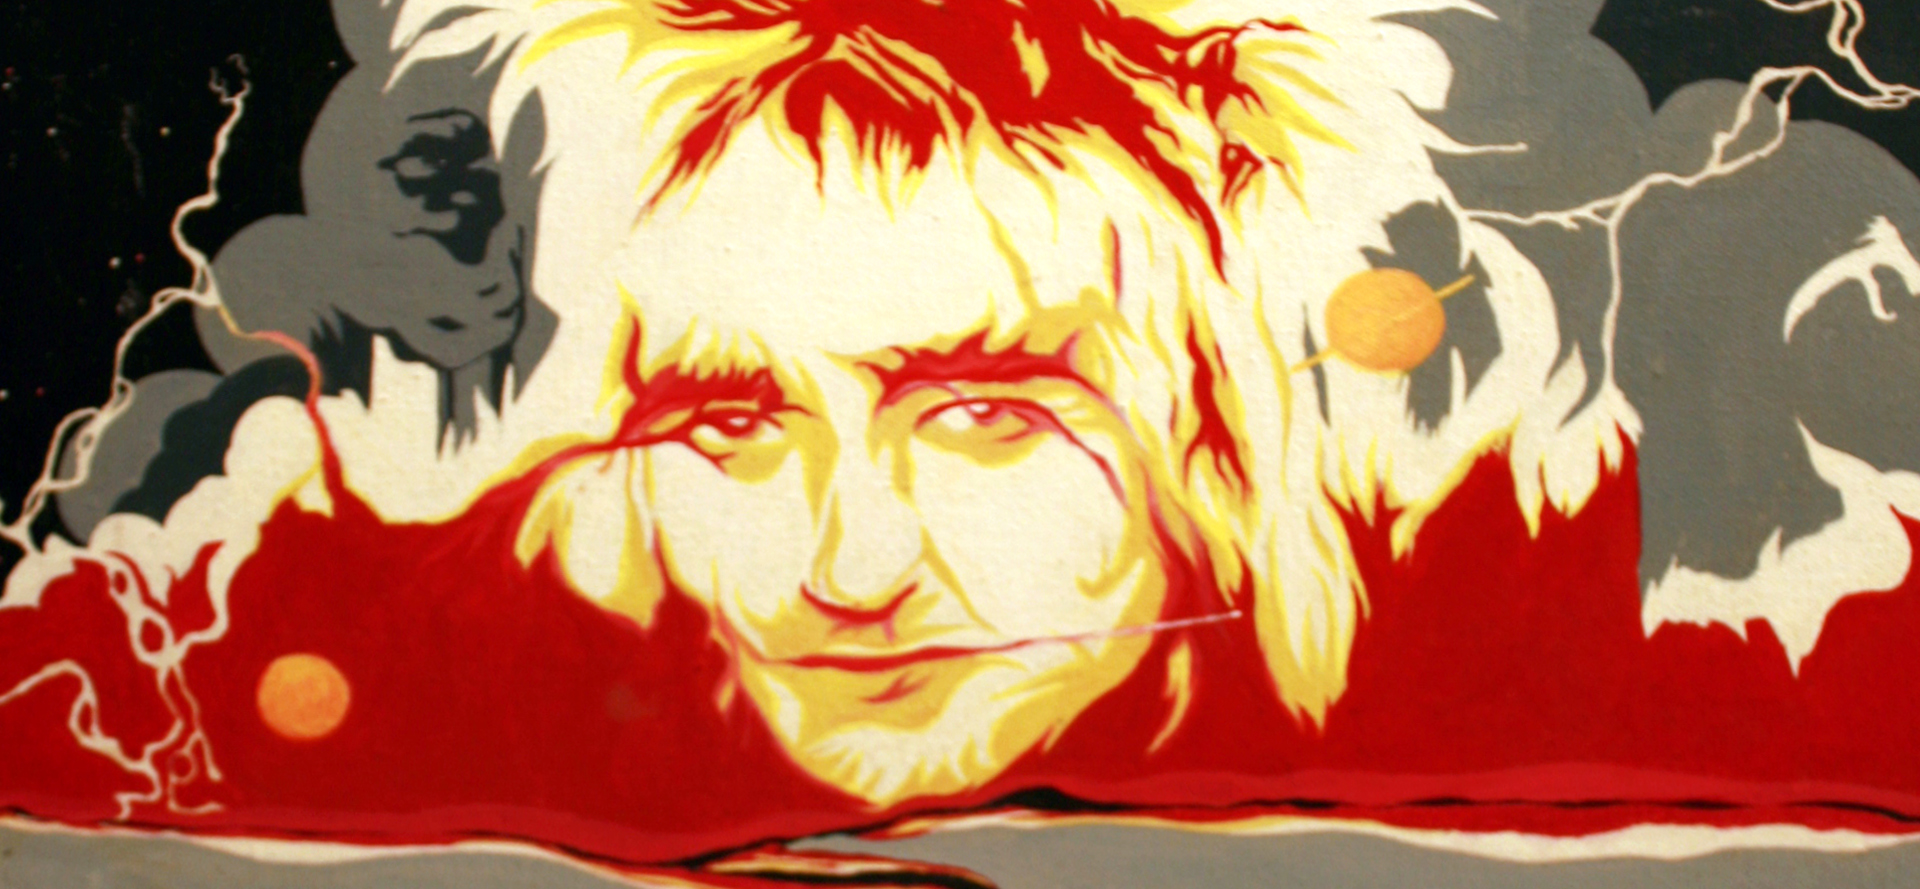 Rod Stewart Coldfire On The Moon